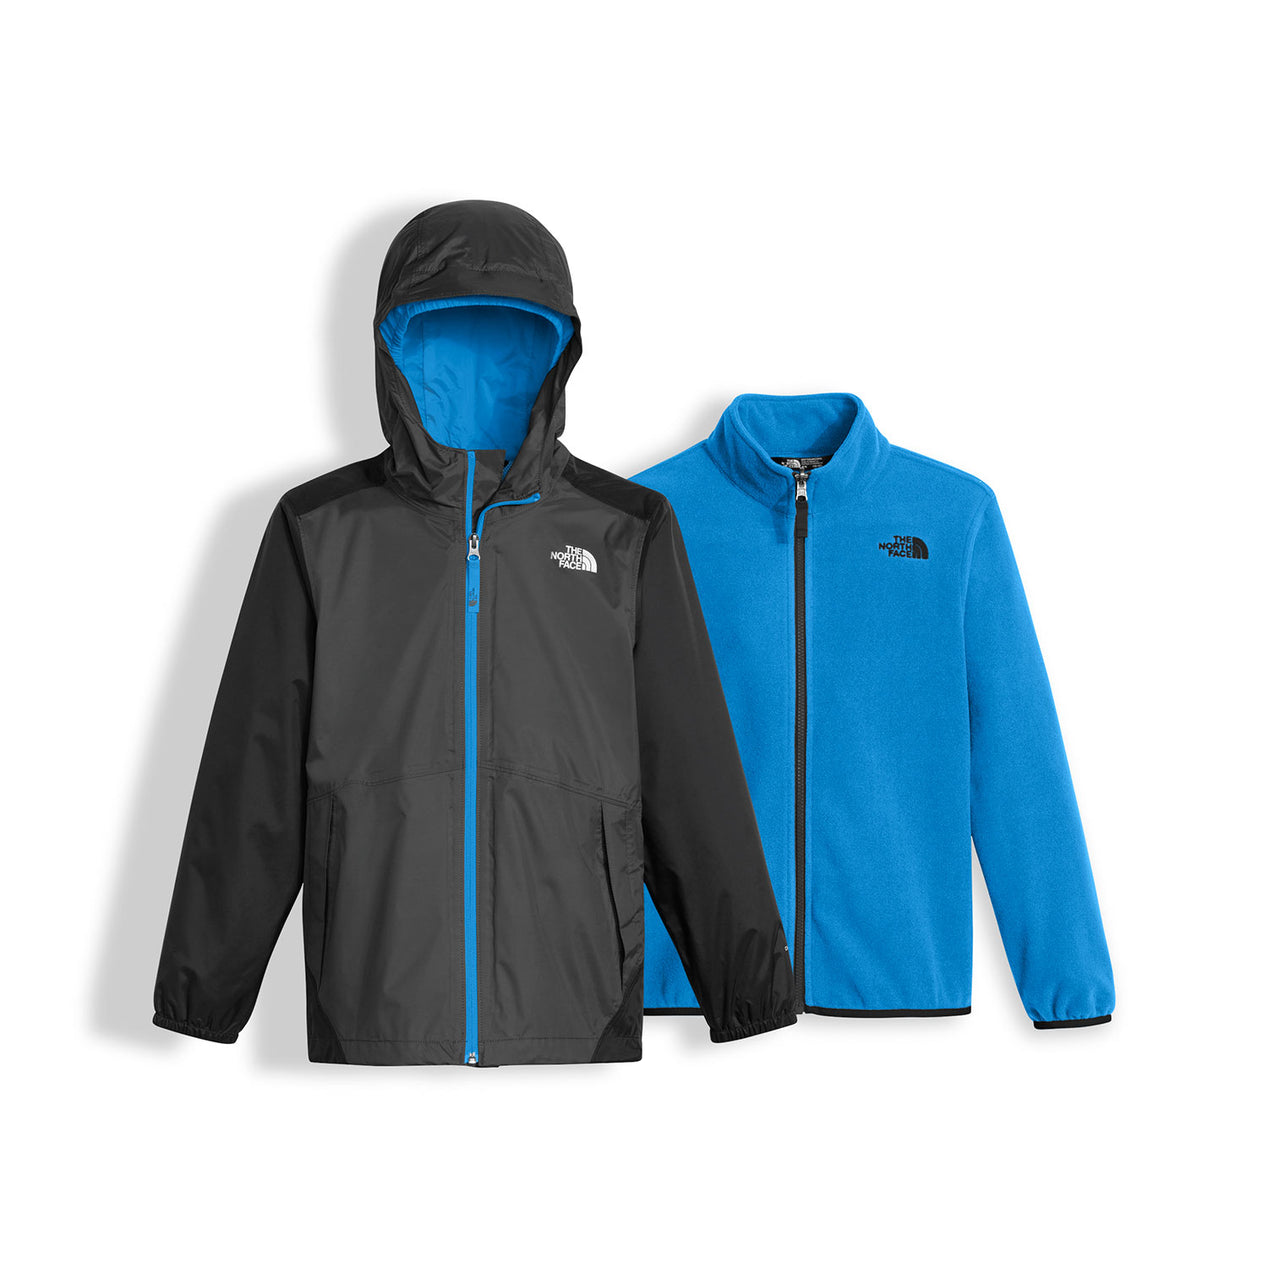 f046e6d87 The North Face Boy's Stormy Rain Triclimate